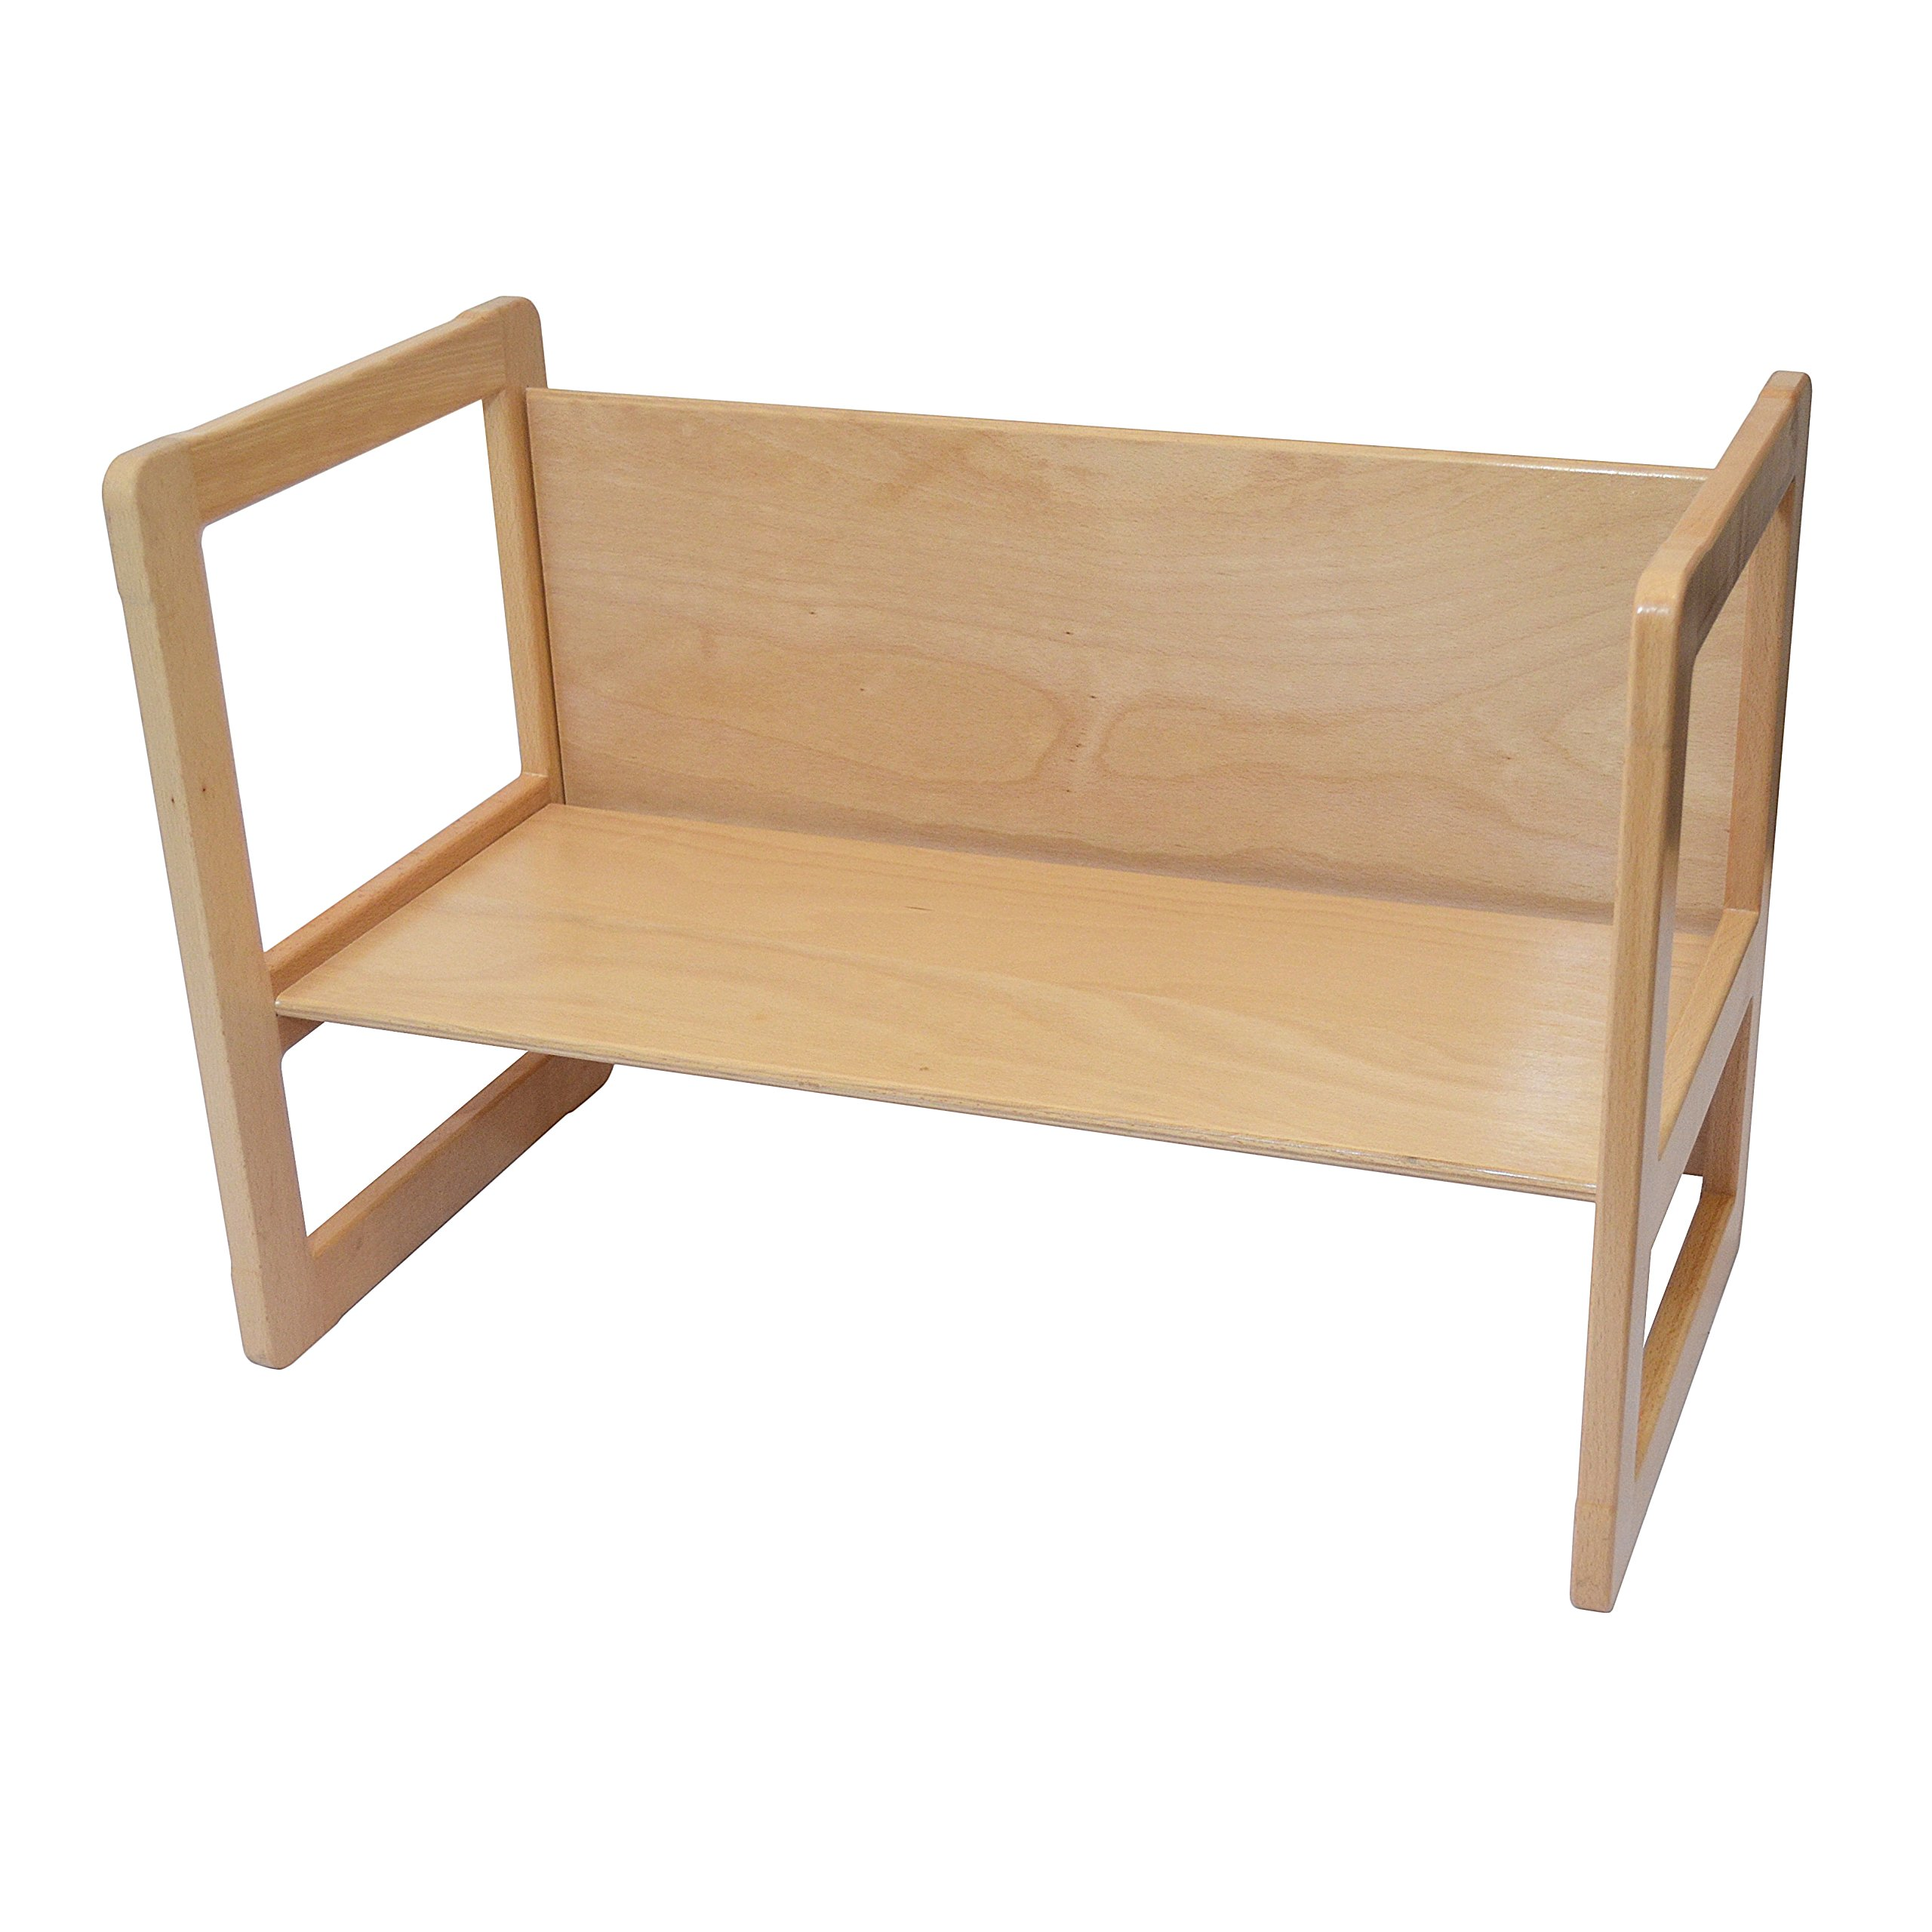 3 in 1 Childrens Furniture One Large Multifunctional Bench or Table Beech Wood, Natural